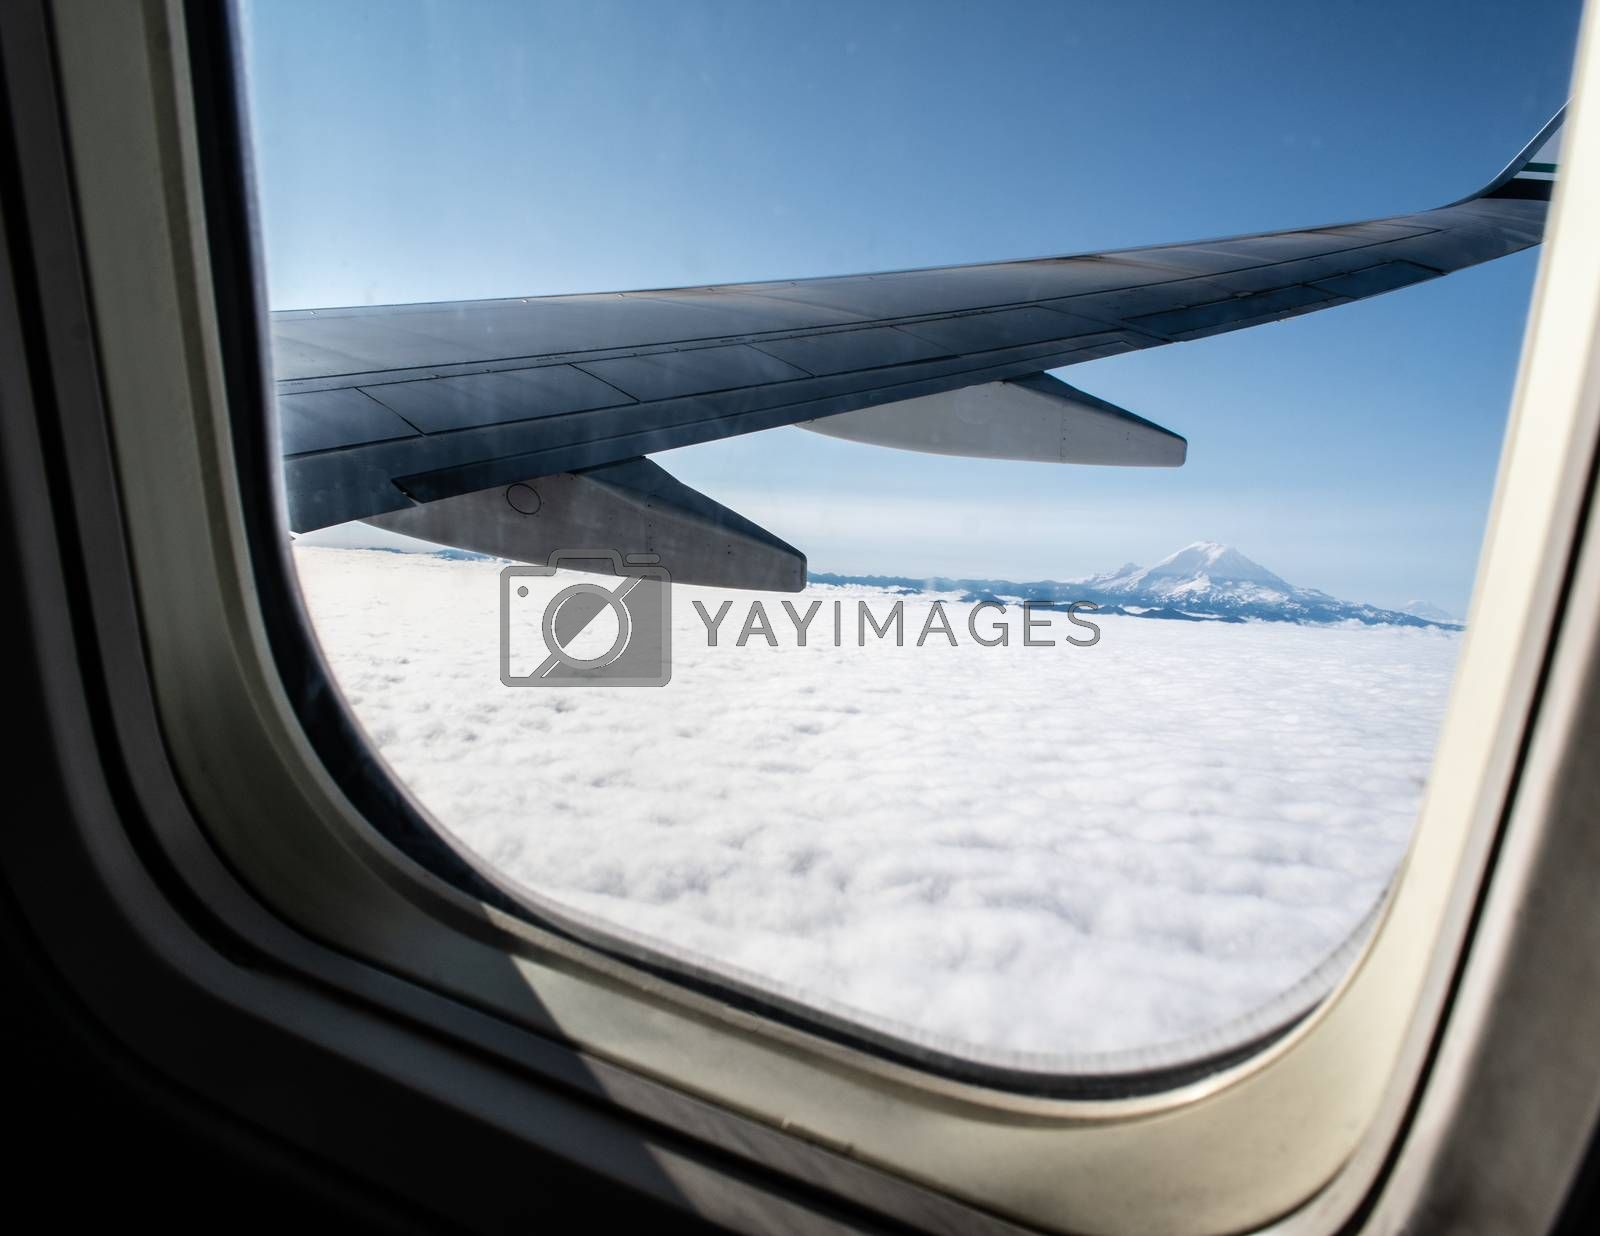 Airplane wing and cloudy mountain views from window seat of a plane